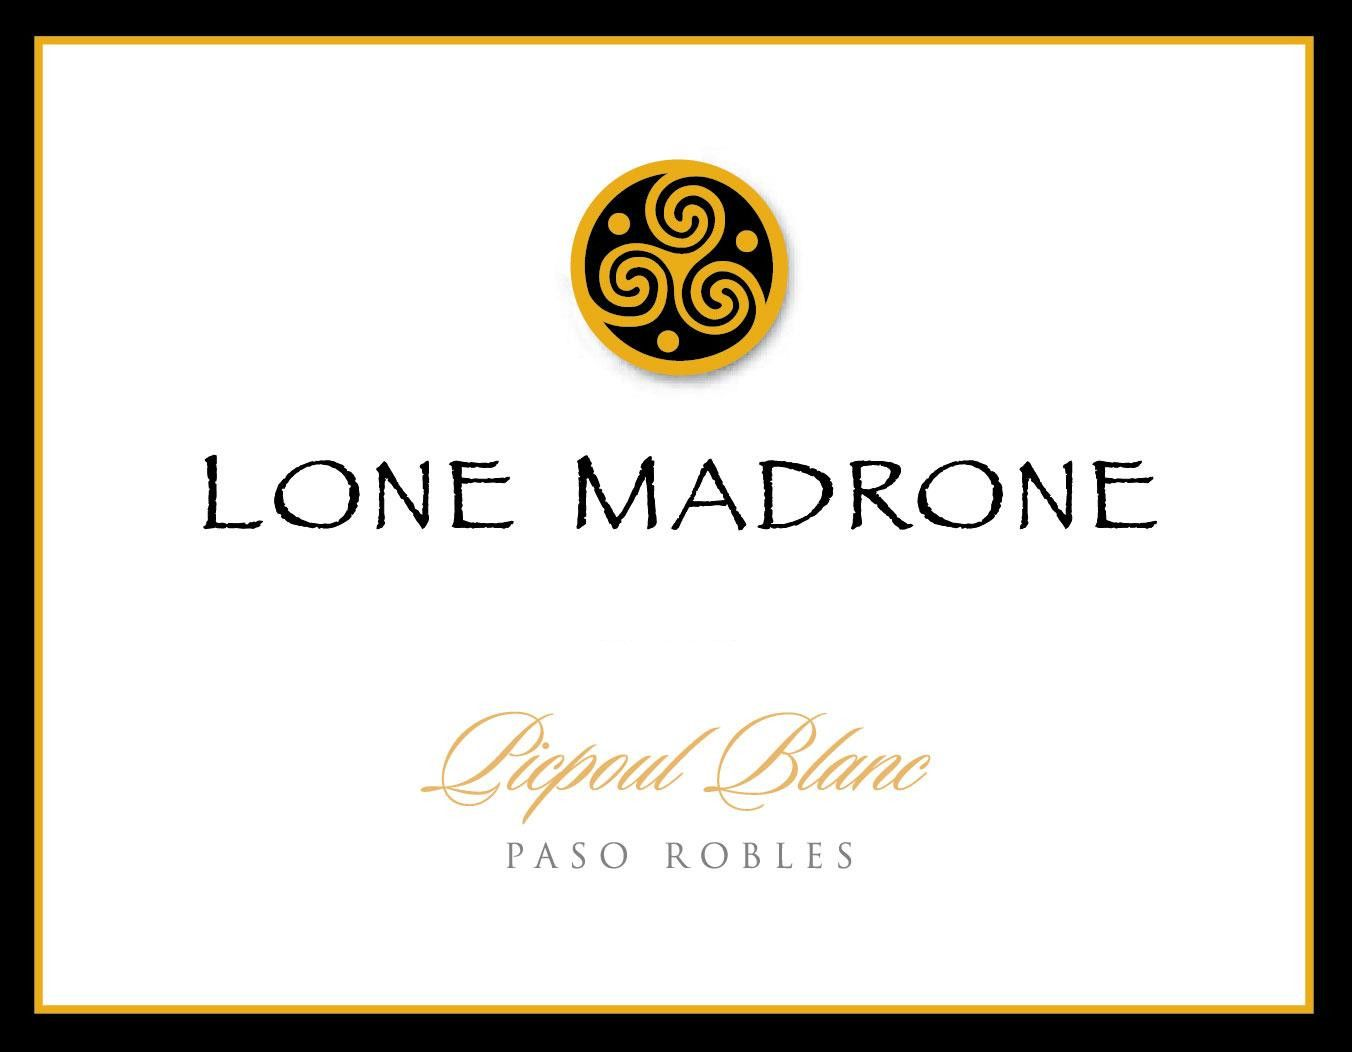 Lone Madrone Picpoul Blanc 2014 Front Label